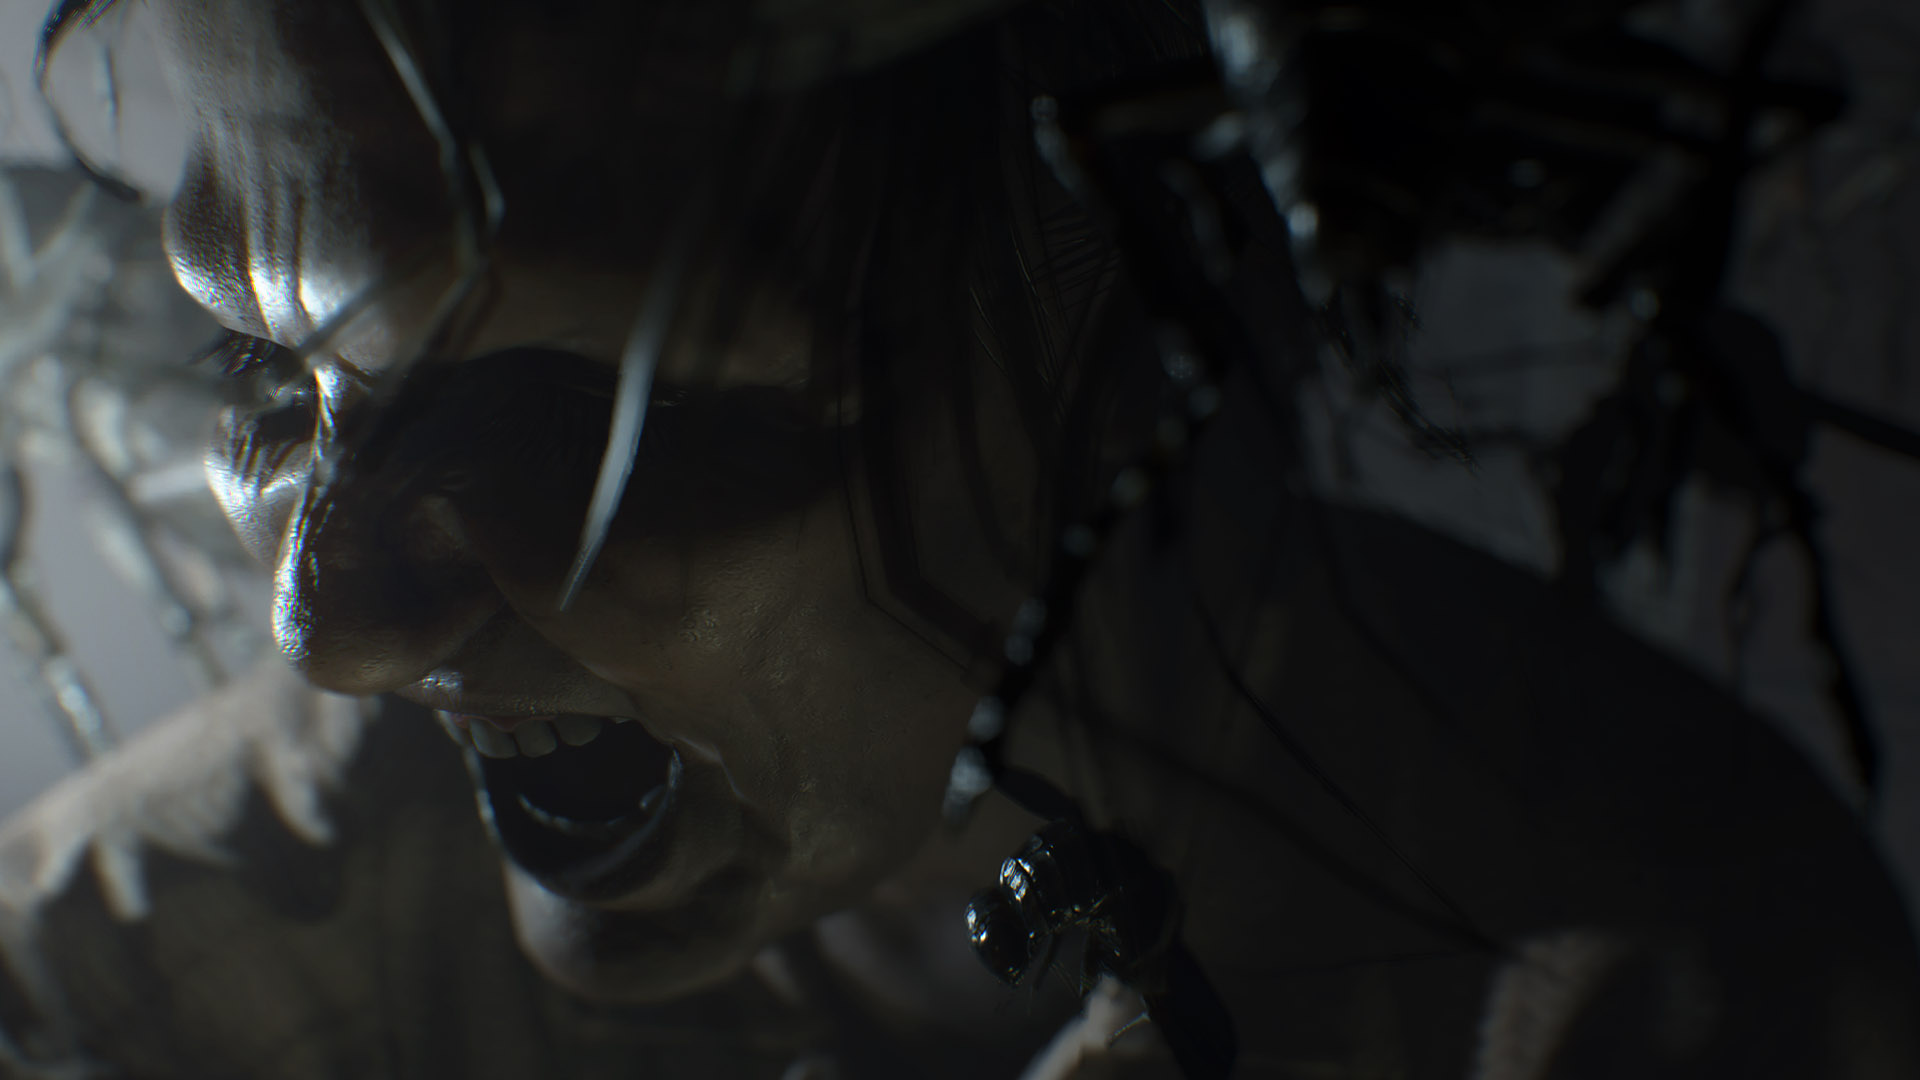 This screenshot of Resident Evil 7 features a close-up of a creepy-looking woman, laughing hysterically, surrounded on all sides by flying insects.